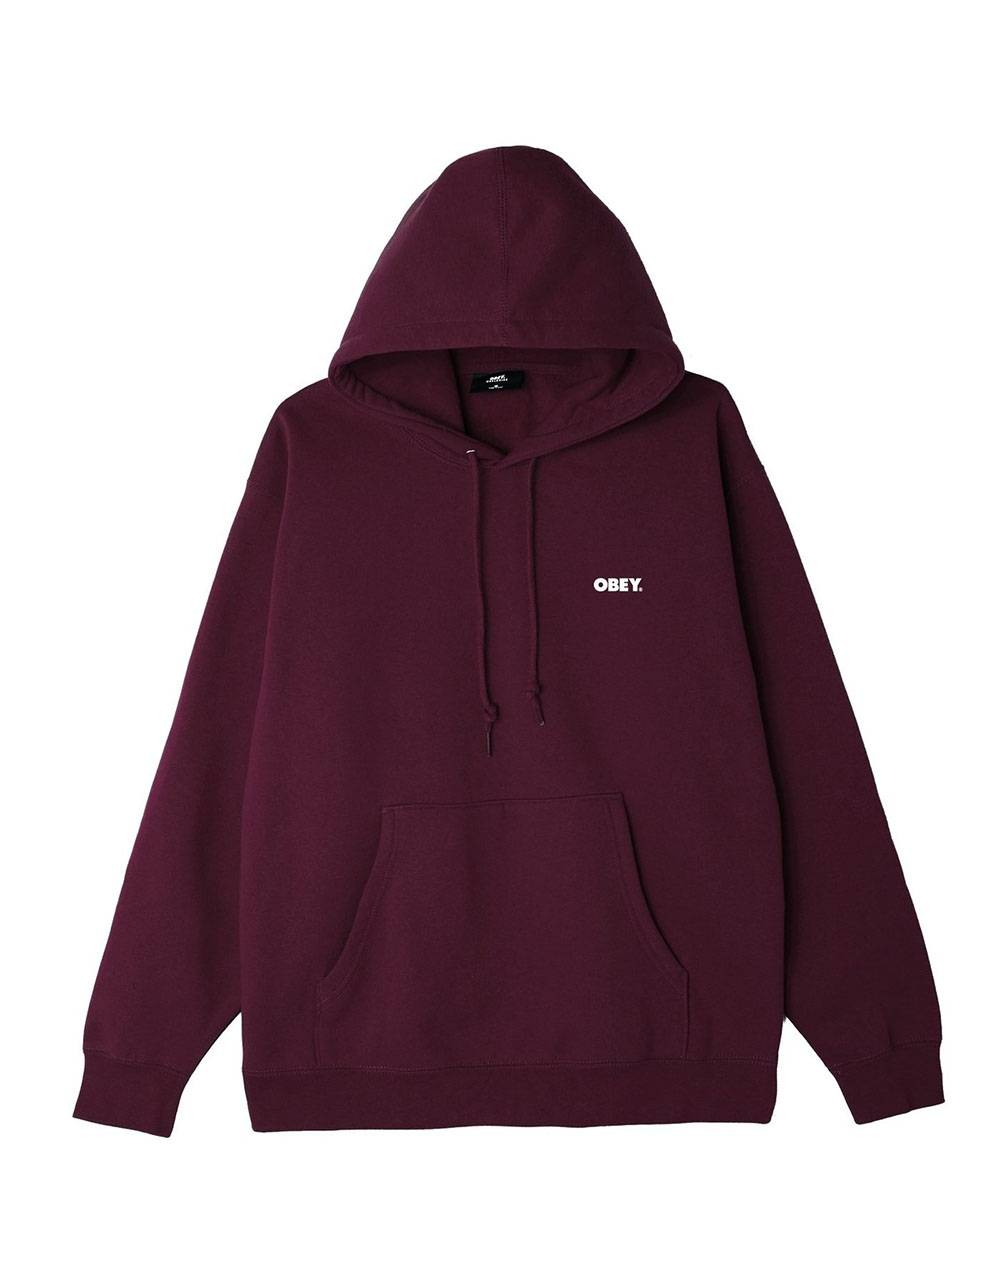 Obey resistance premium hoodie - blackberry wine obey Sweater 81,15 €